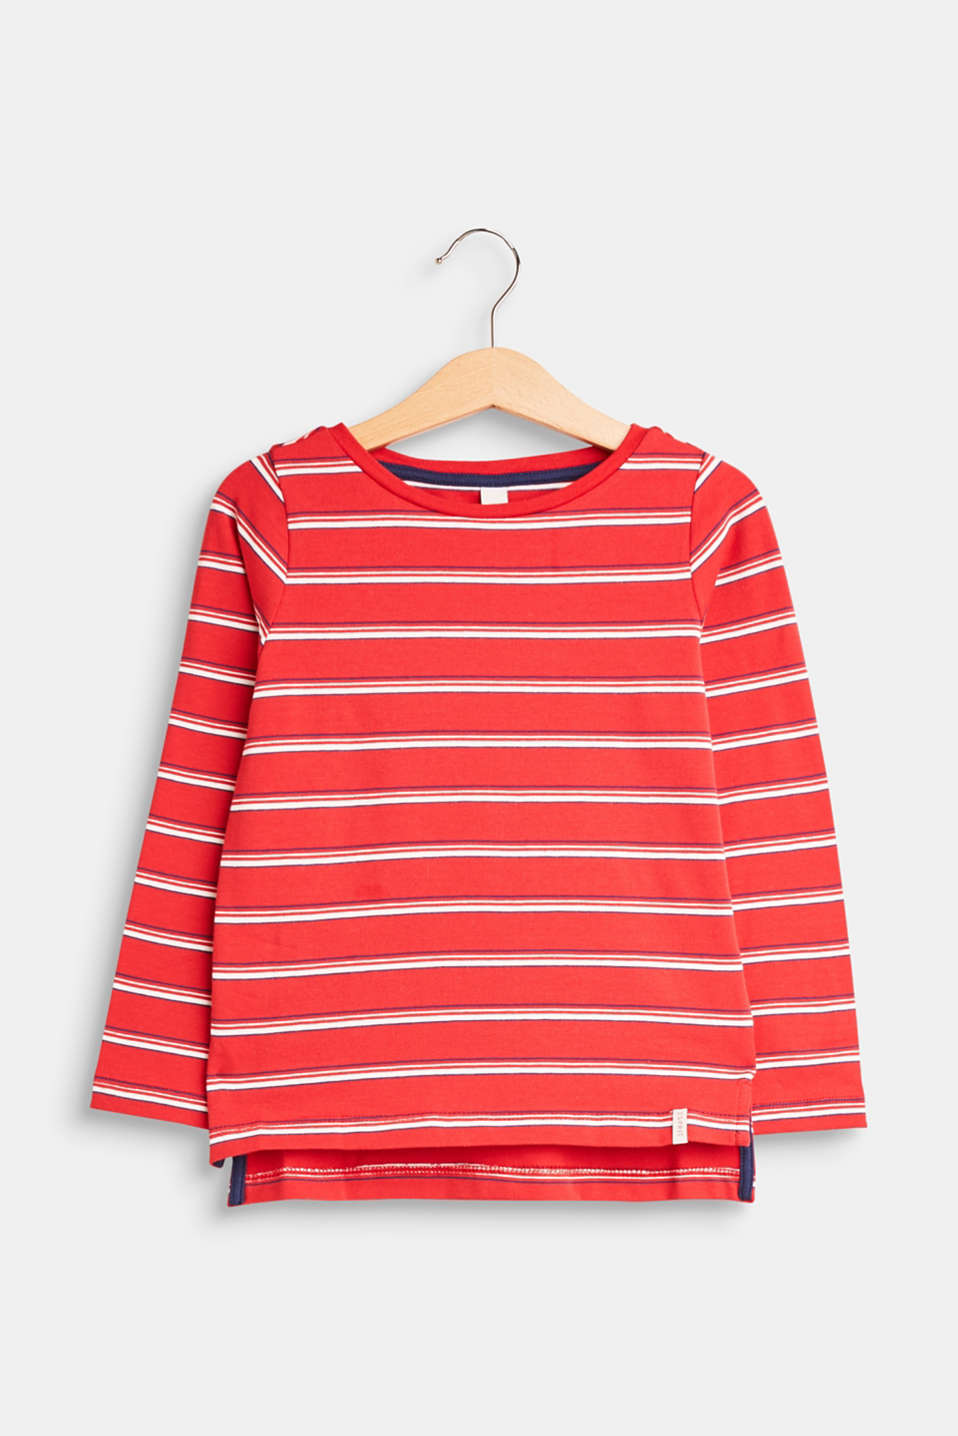 Esprit - Long sleeve striped T-shirt